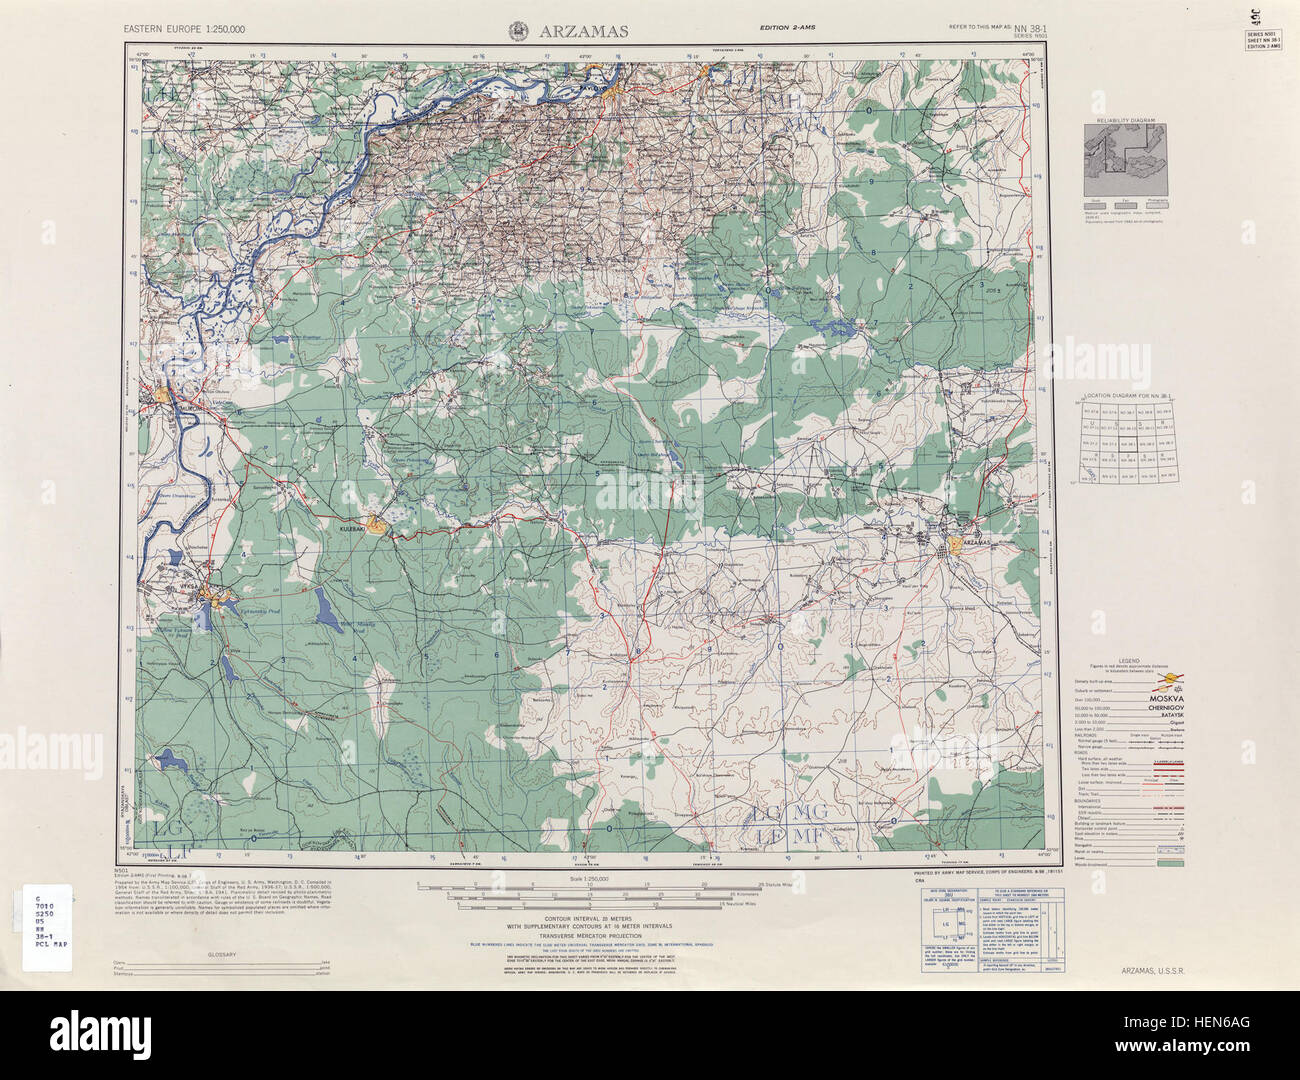 USSR map NN 38-1 Arzamas - Stock Image